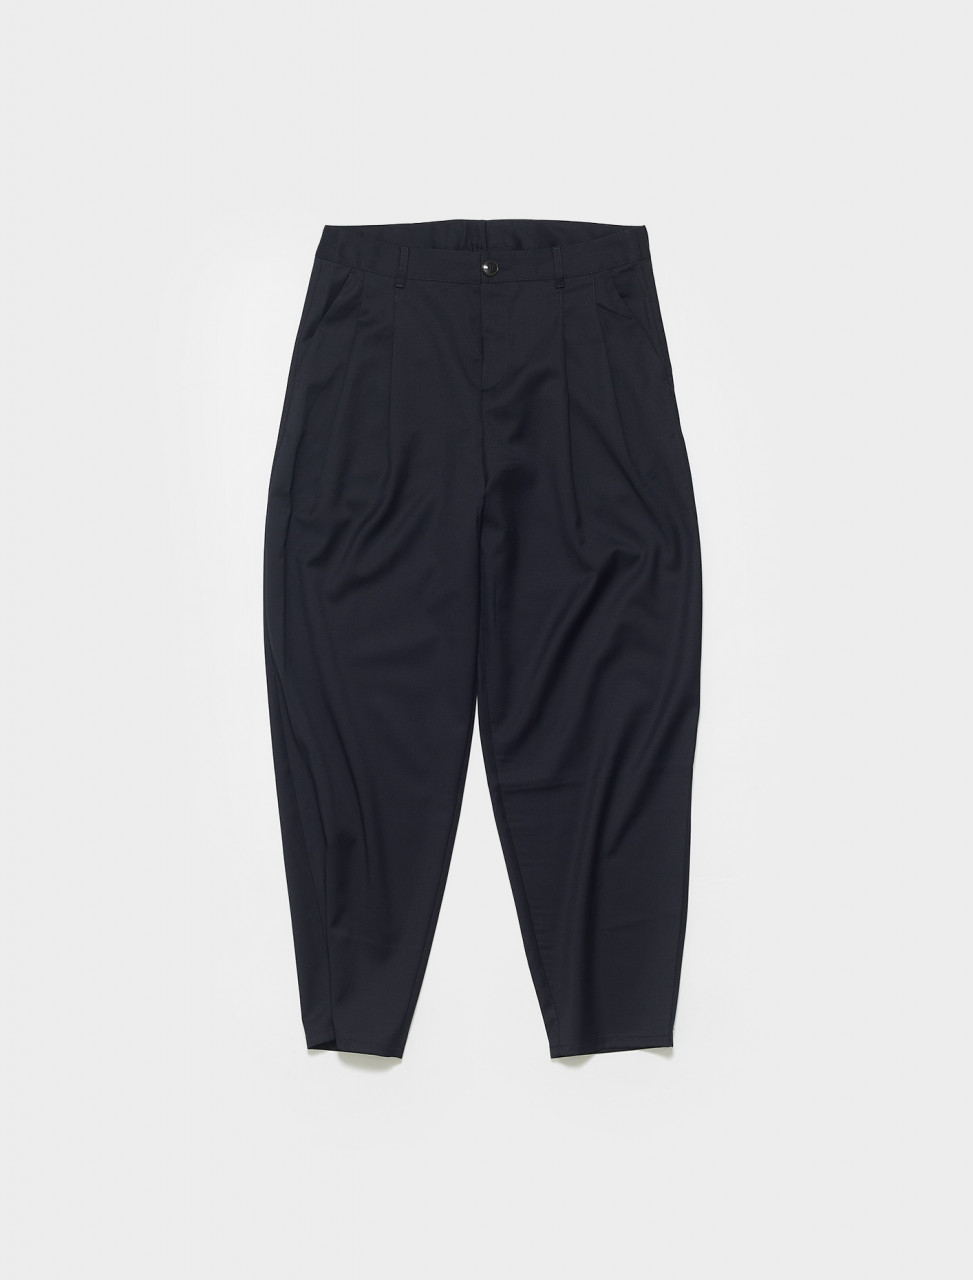 203-720-715 A KIND OF GUISE PLEATED WIDE TROUSERS MIDNIGHT NAVY